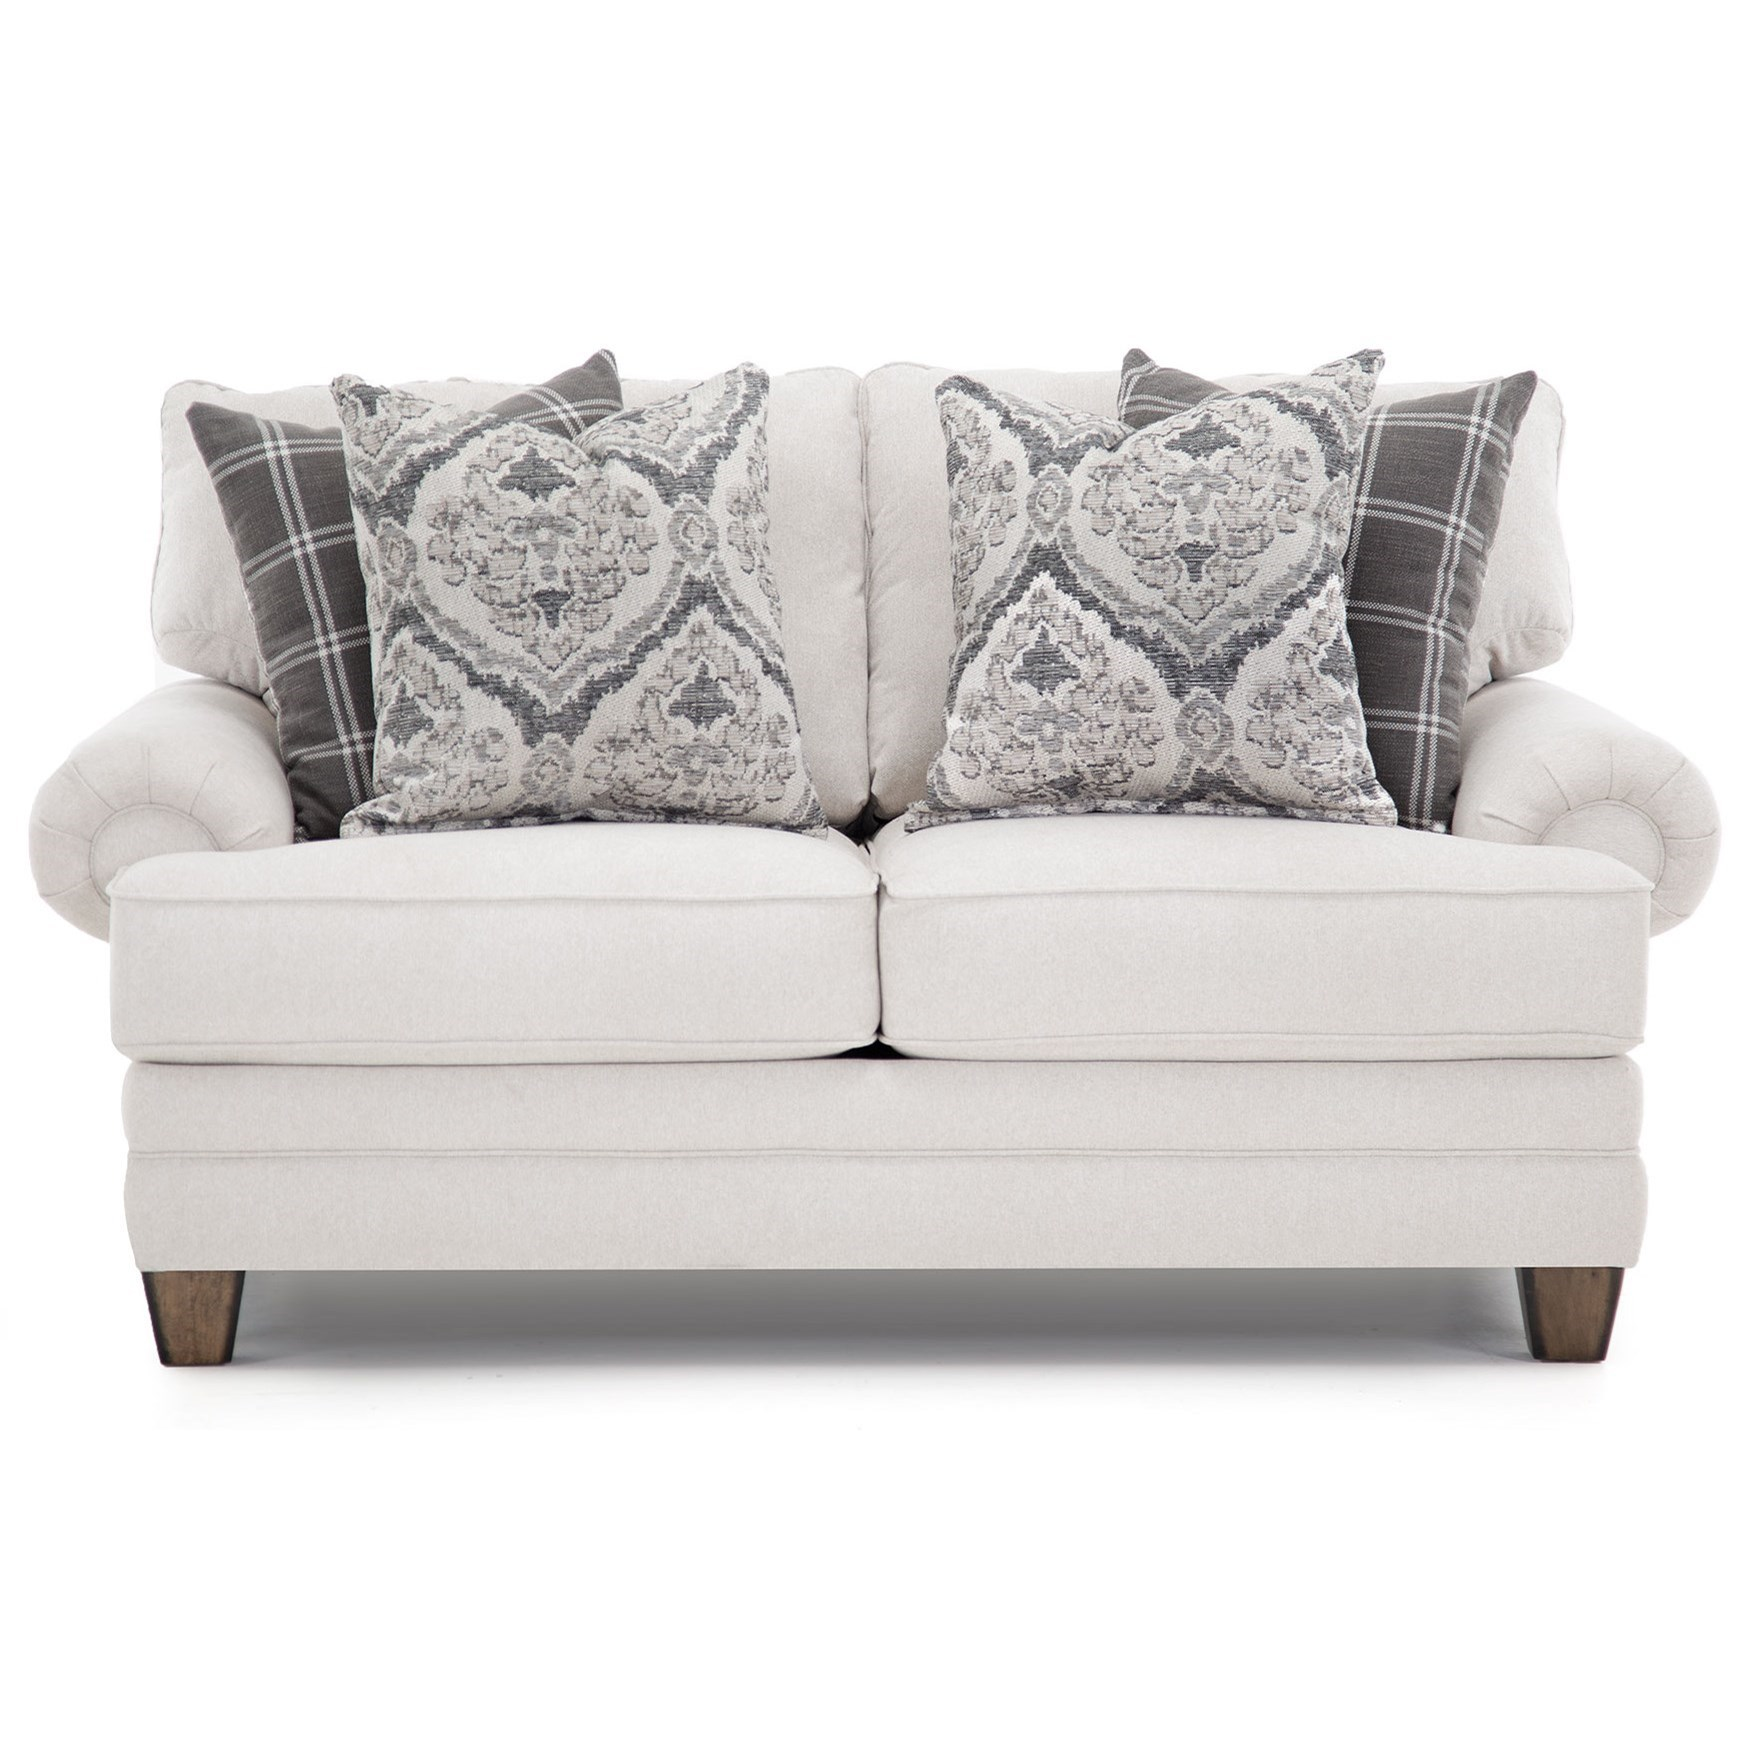 957 Loveseat by Franklin at Wilcox Furniture